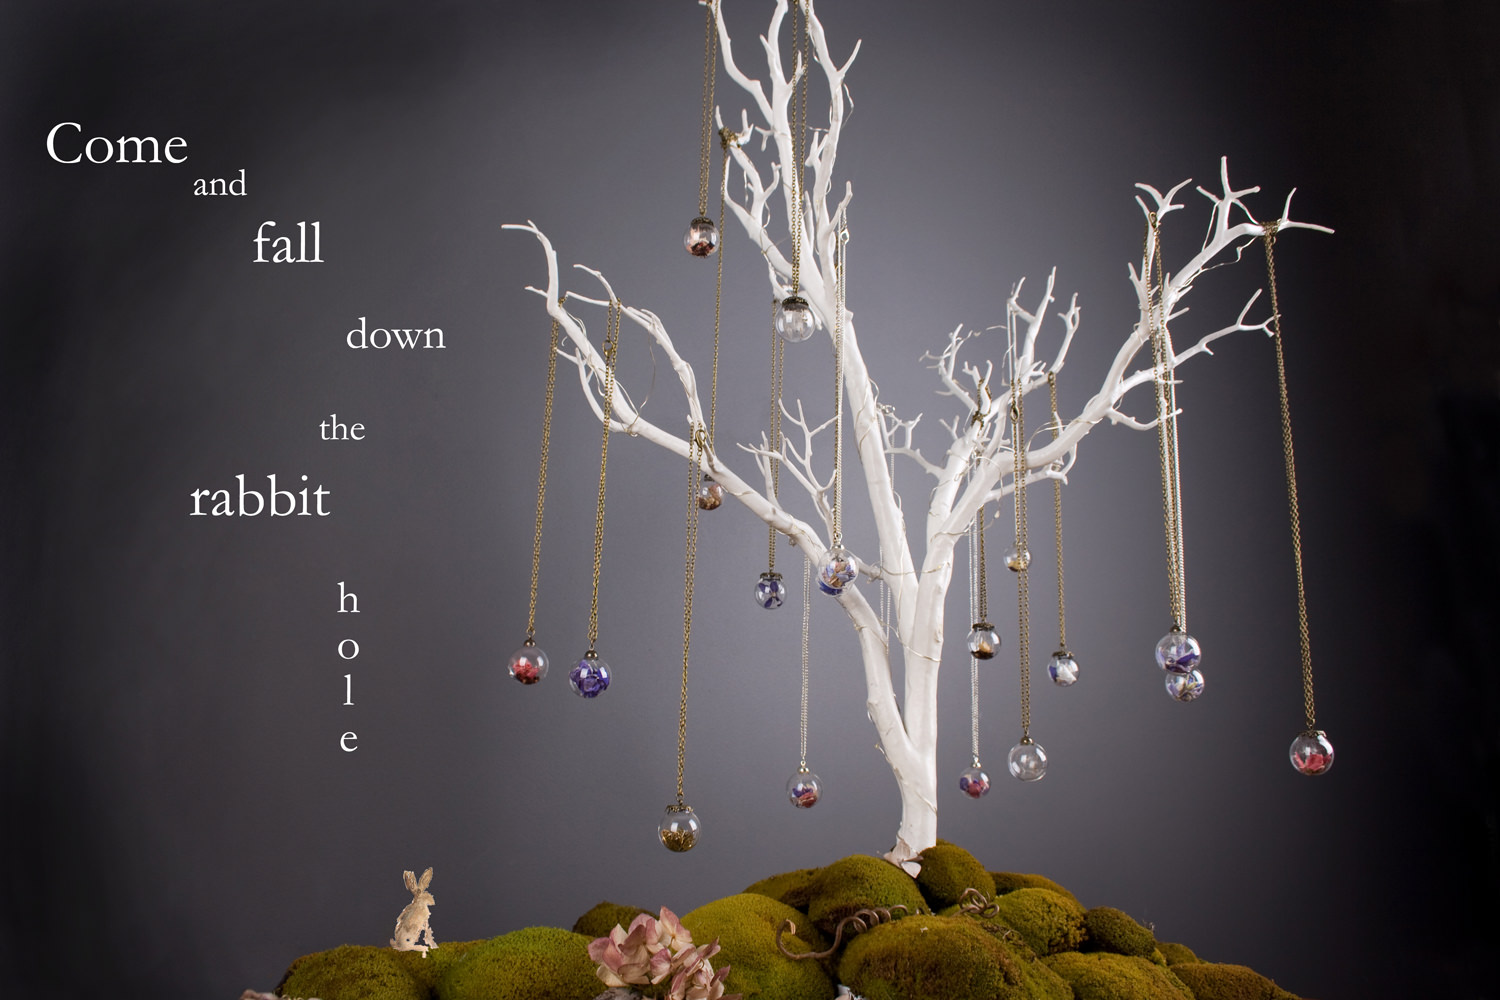 Enchanted-tree-with-come-and-fall-down-the-rabbit-hole-b.jpg